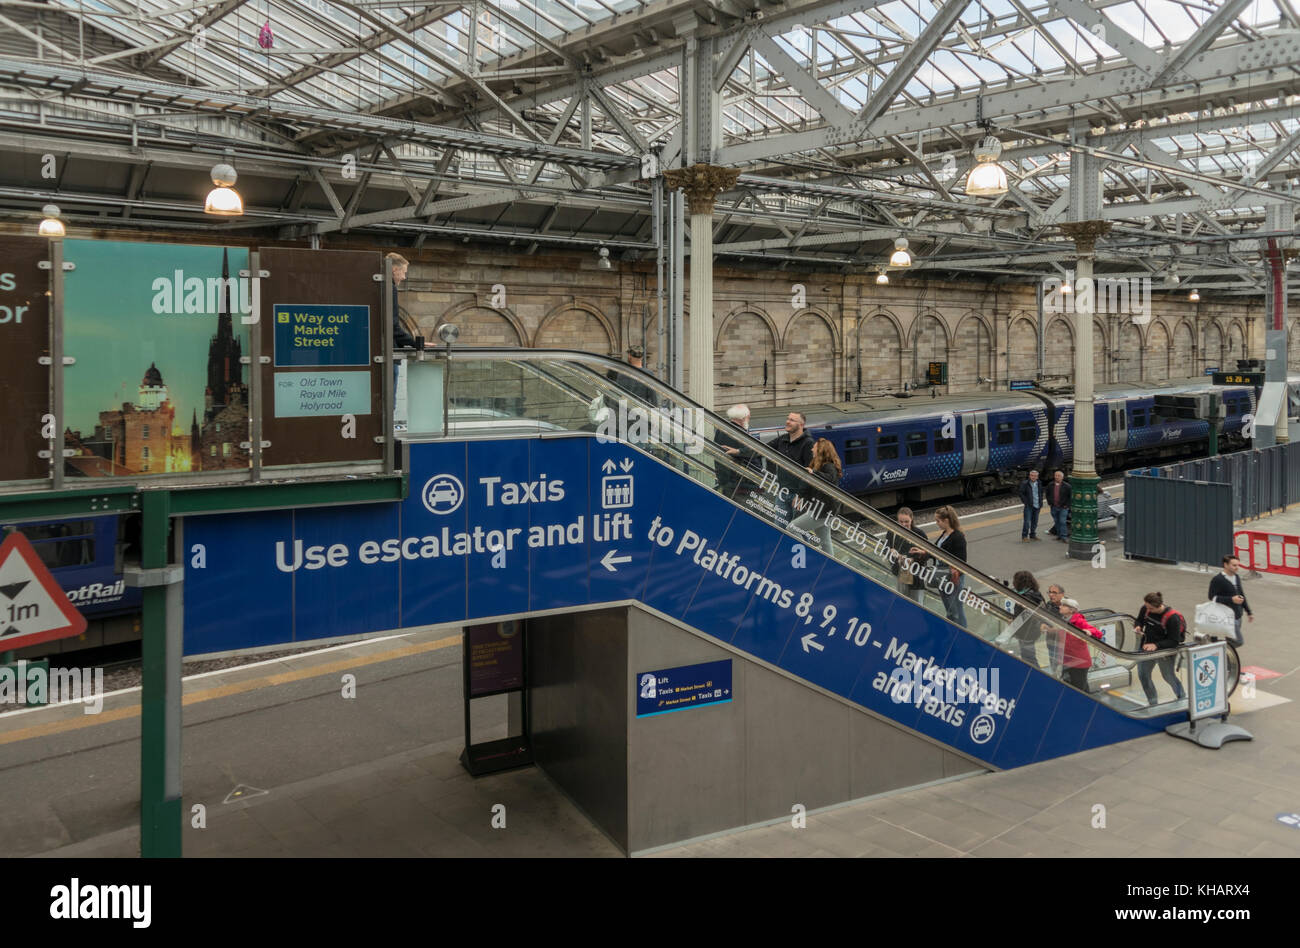 The new escalator access to Waverley Station, Edinburgh,Scotland,UK Stock Photo